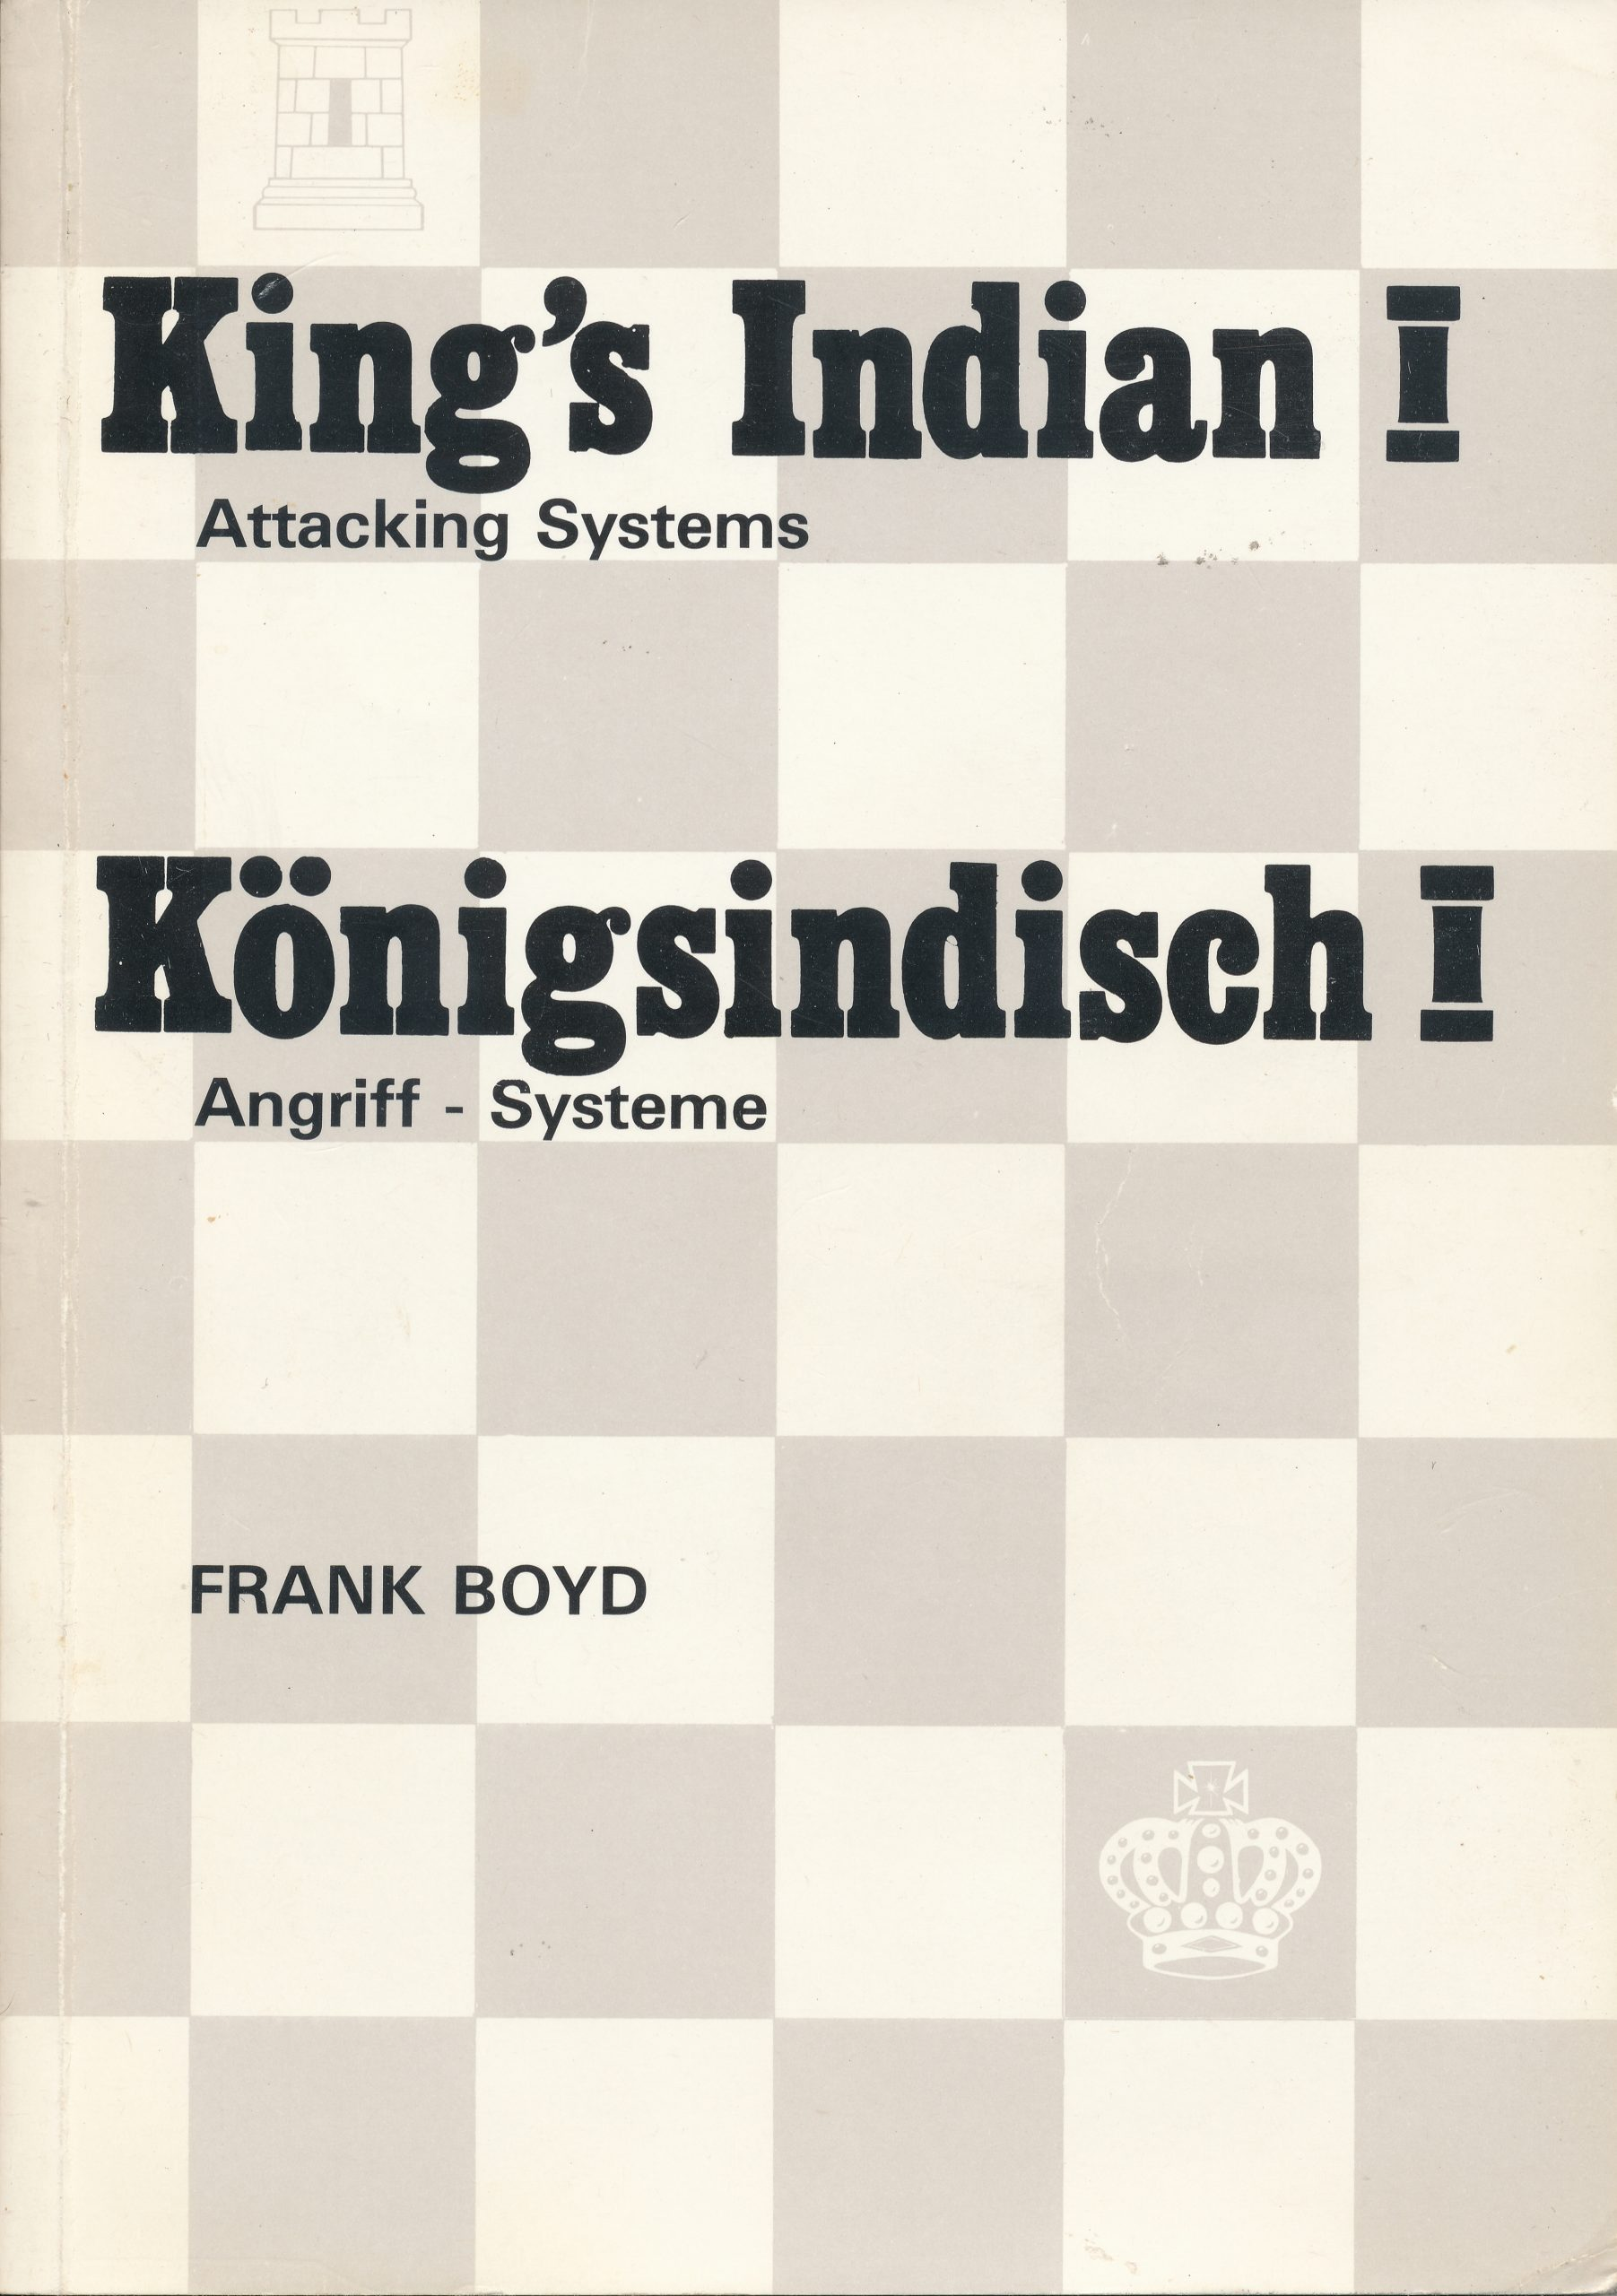 King's Indian I by Frank Boyd, Chess Praxis, 1981